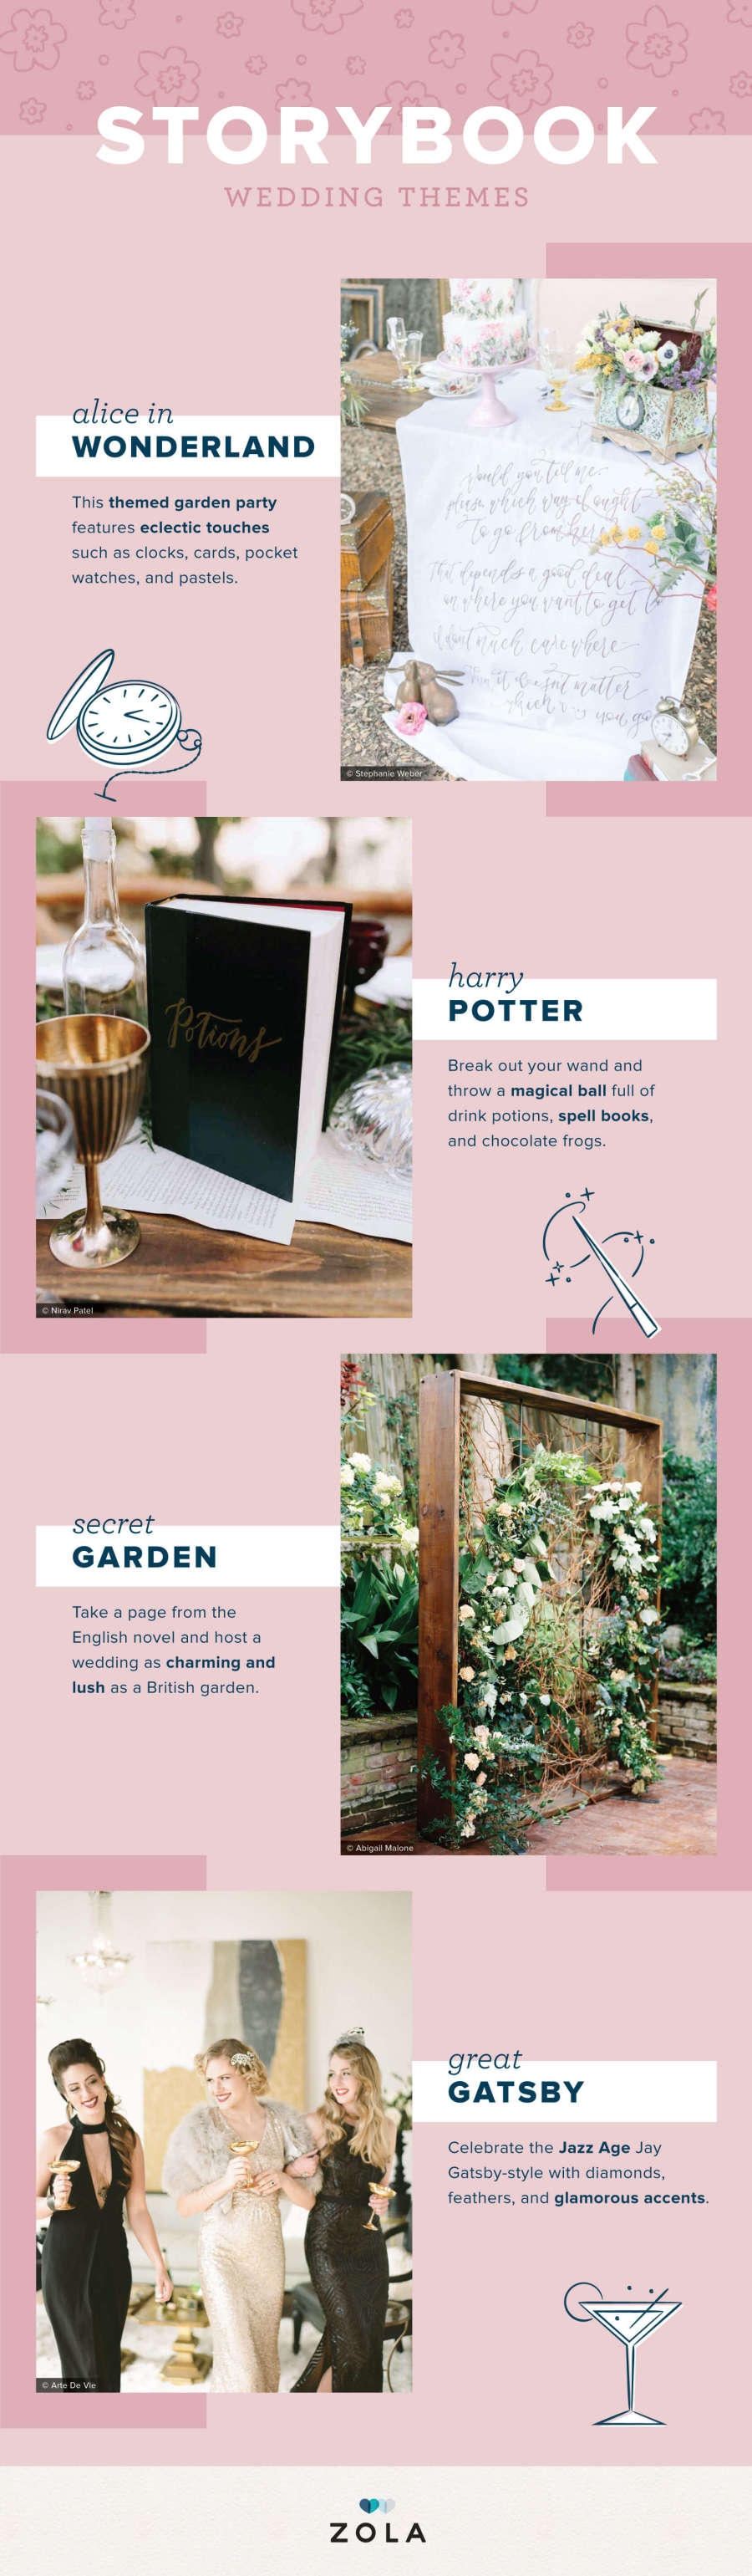 Storybook Wedding Theme Ideas